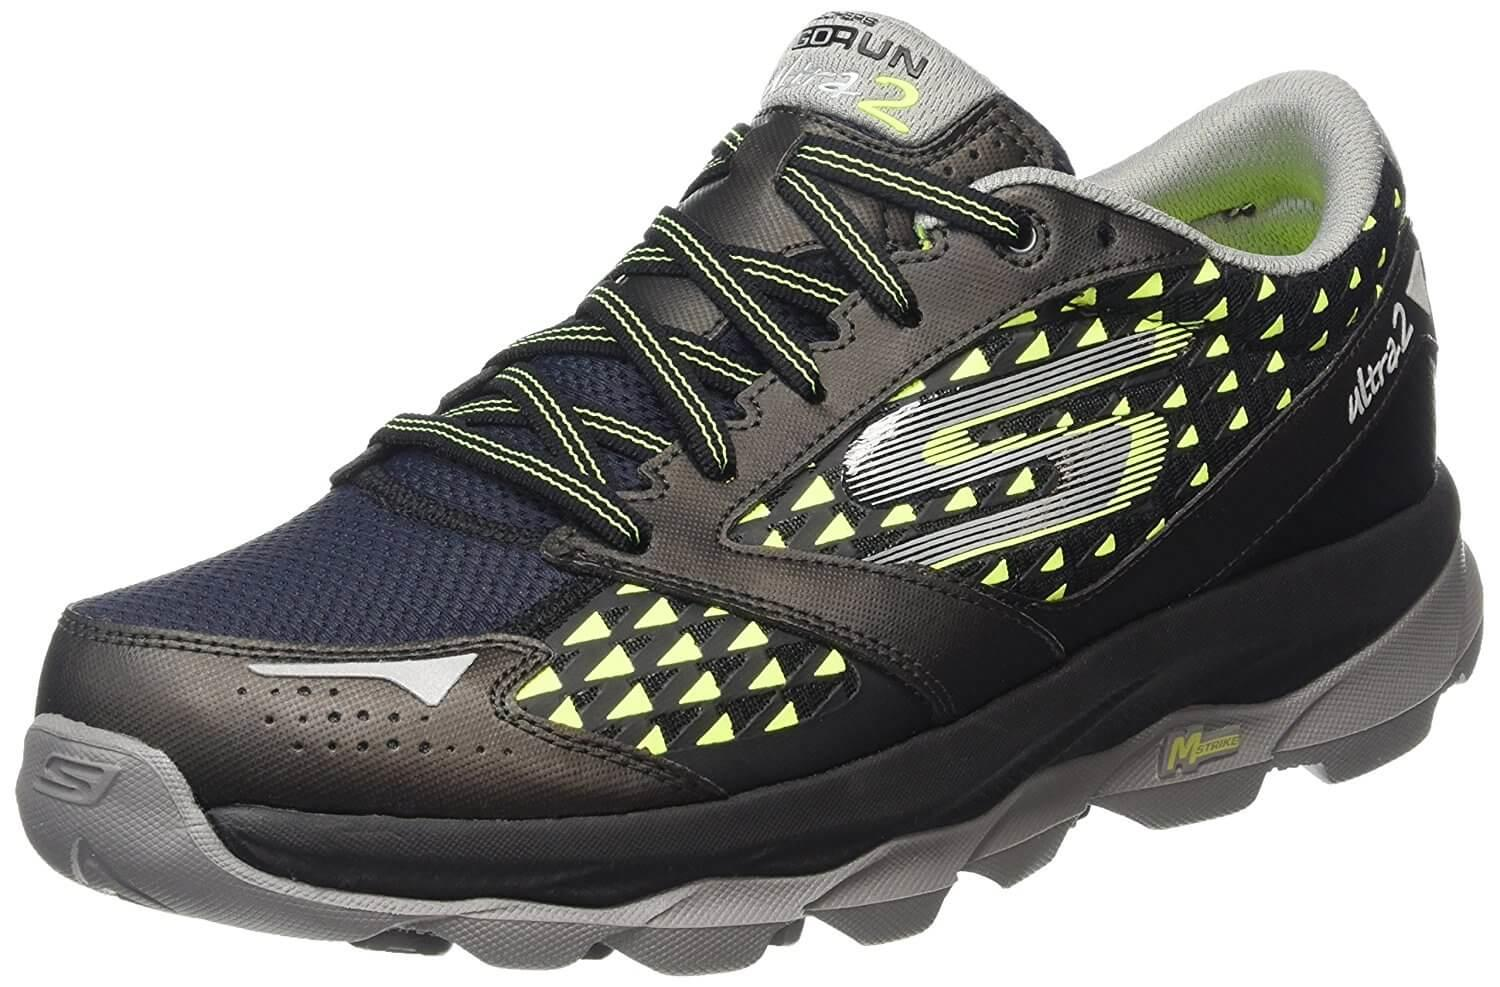 A three quarter view of the Skechers GOrun Ultra 2